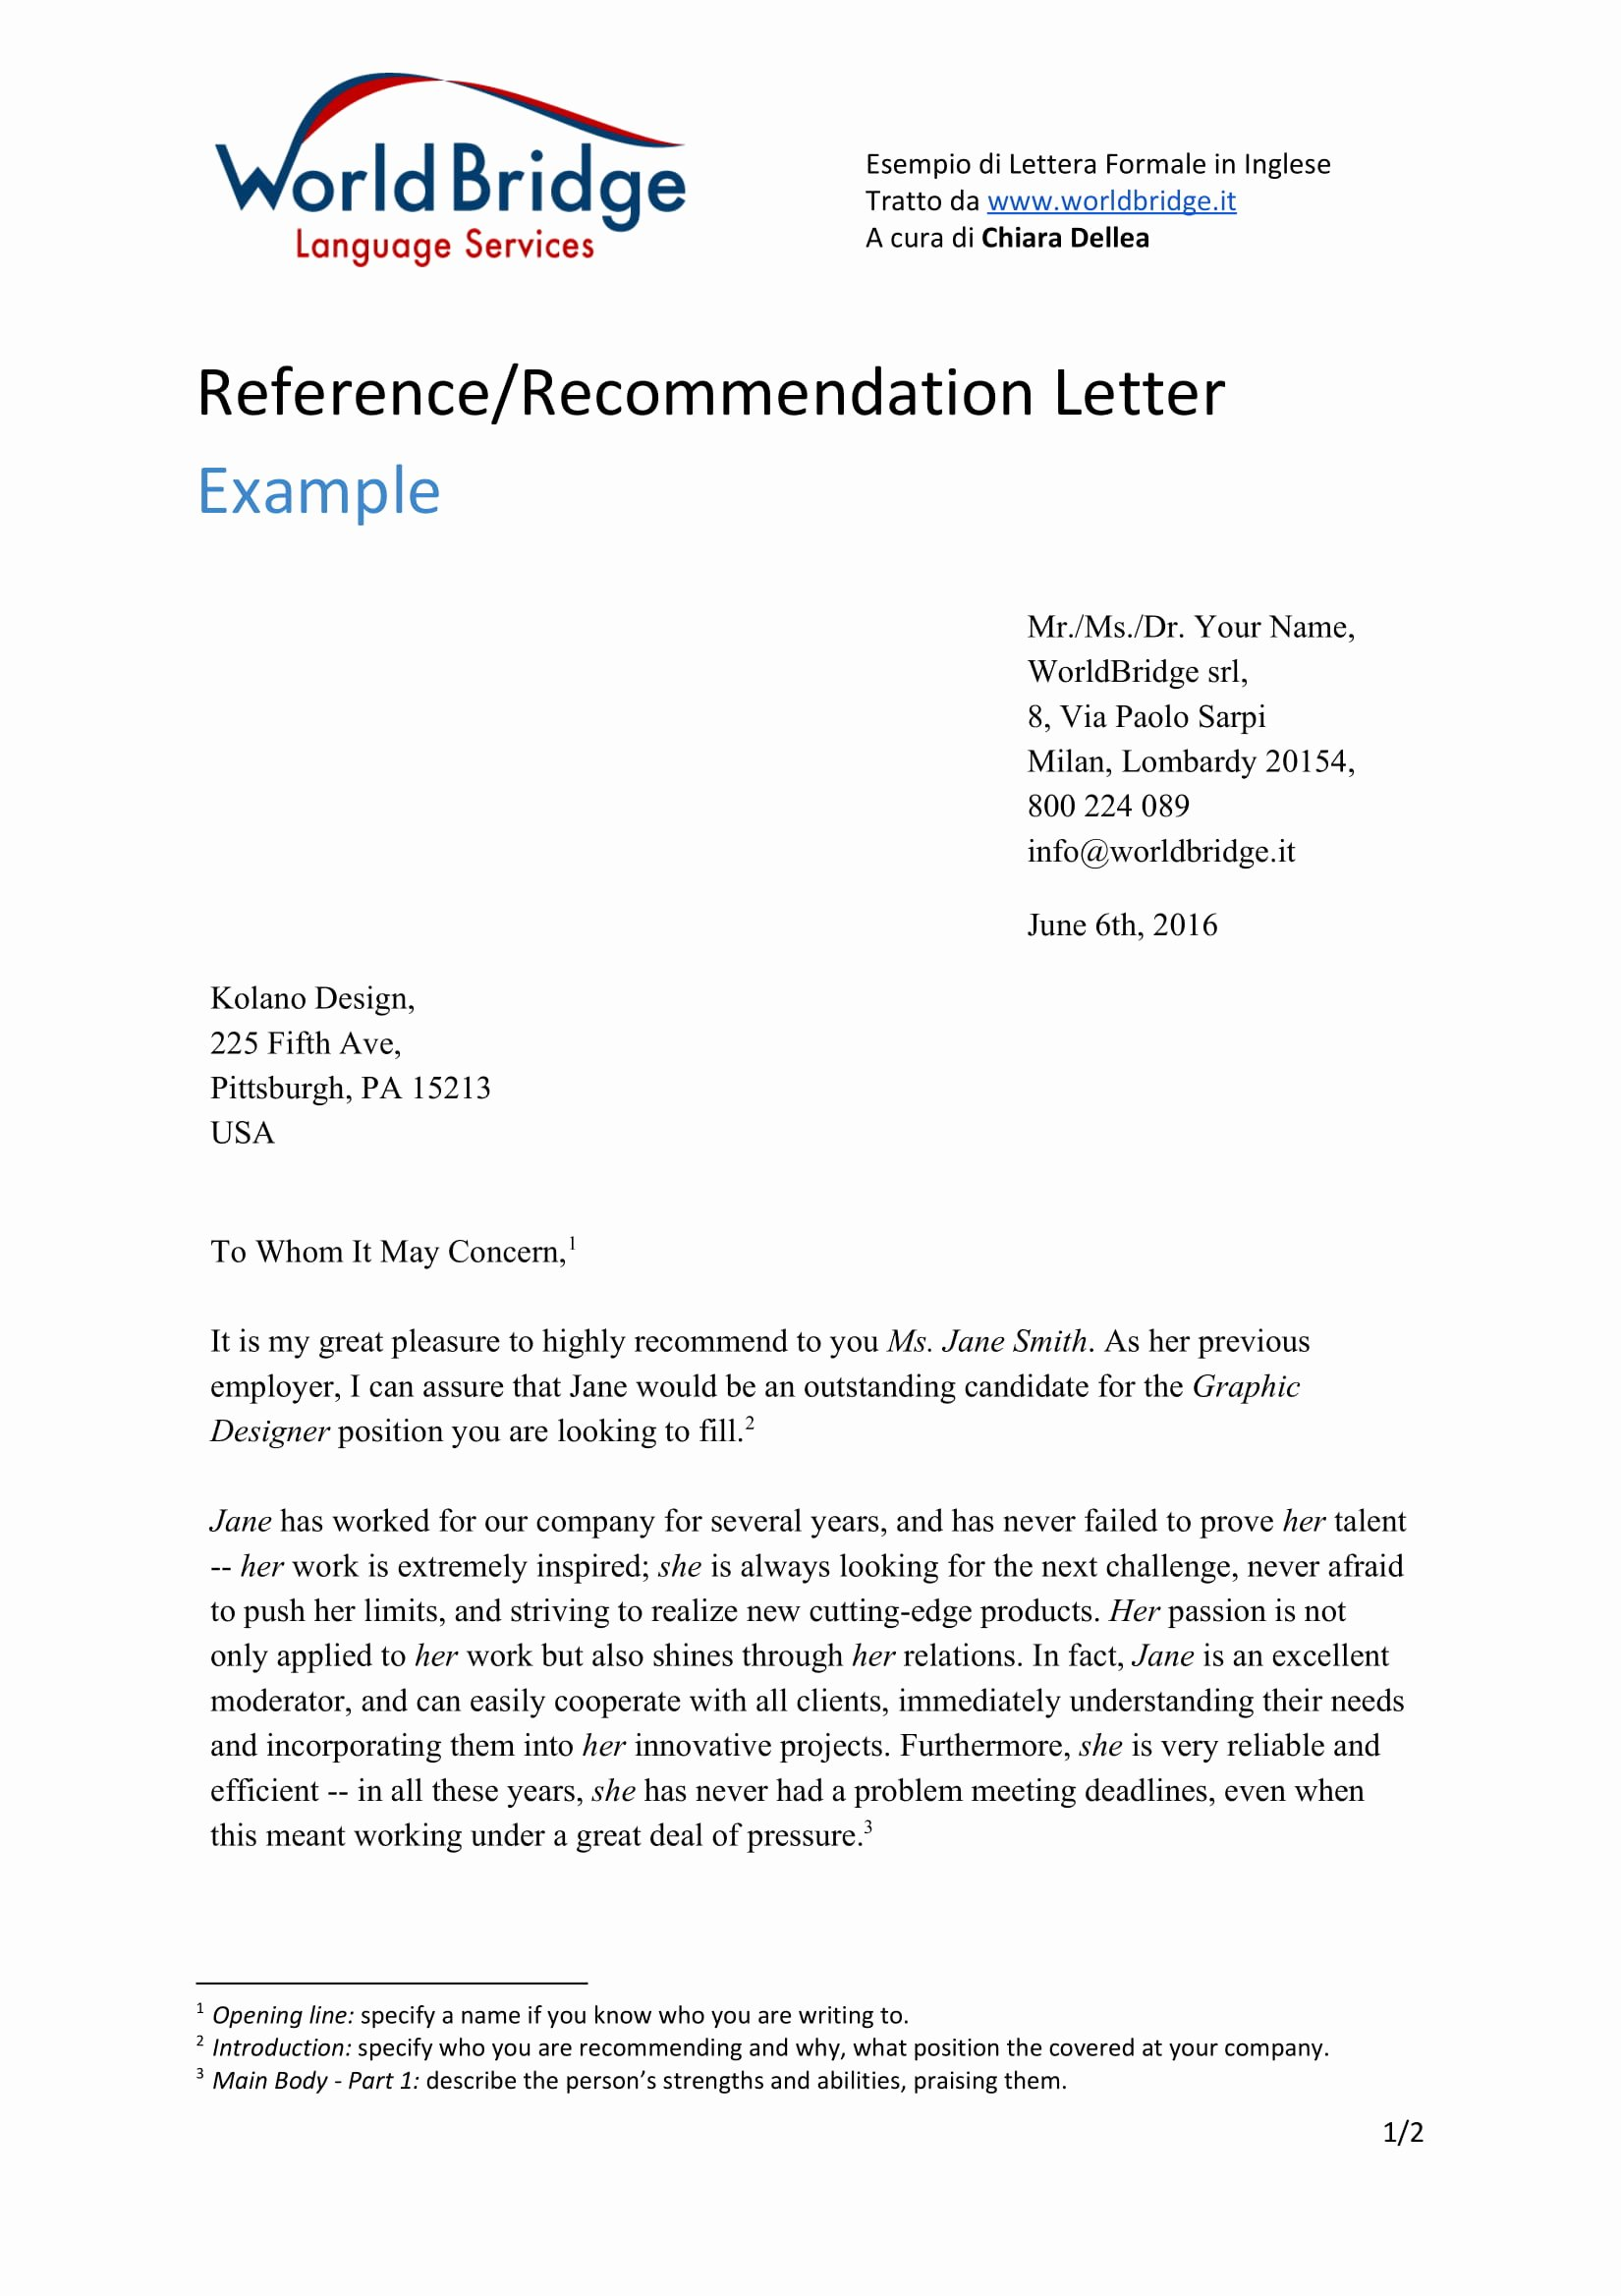 Recommendation Letter Computer Science Lovely Letter Re Mendation From Employer for Ms In Puter